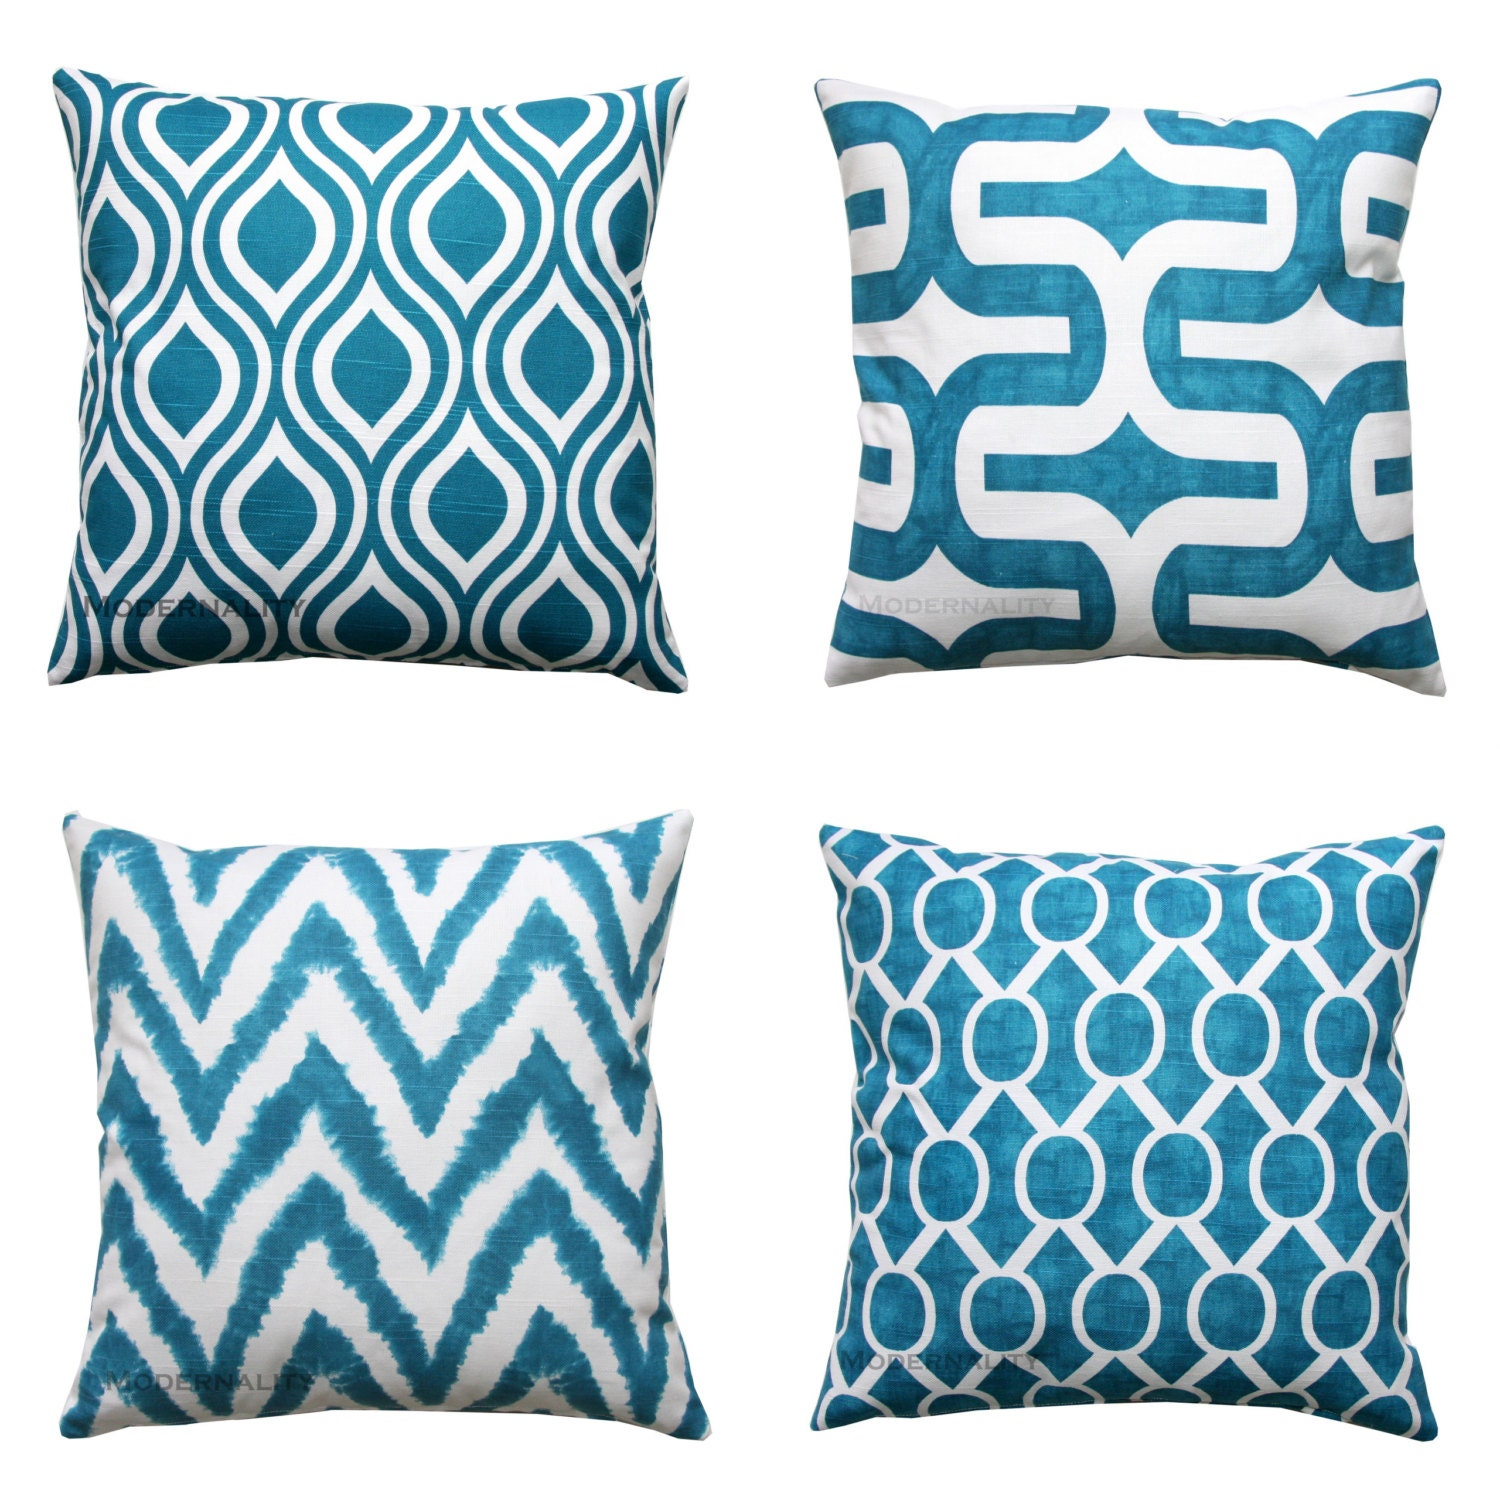 Blue toss pillows aquarius dark turquoise by - Cojines modernos para sofas ...